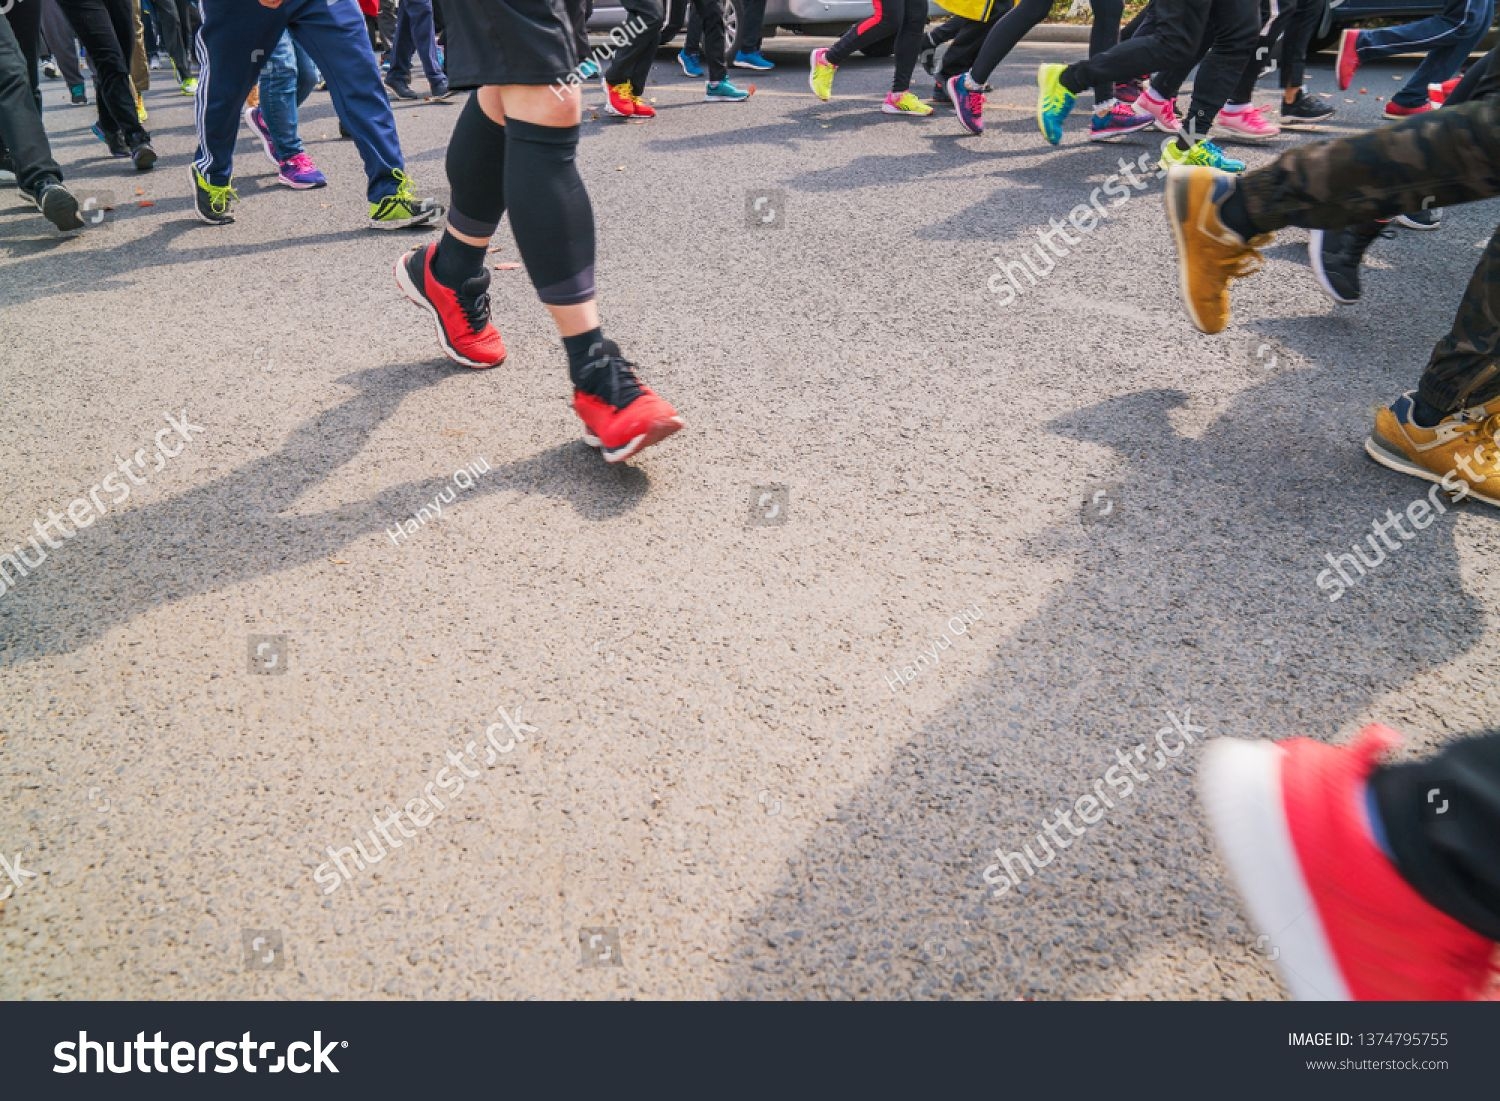 Sportsloving people running in the park